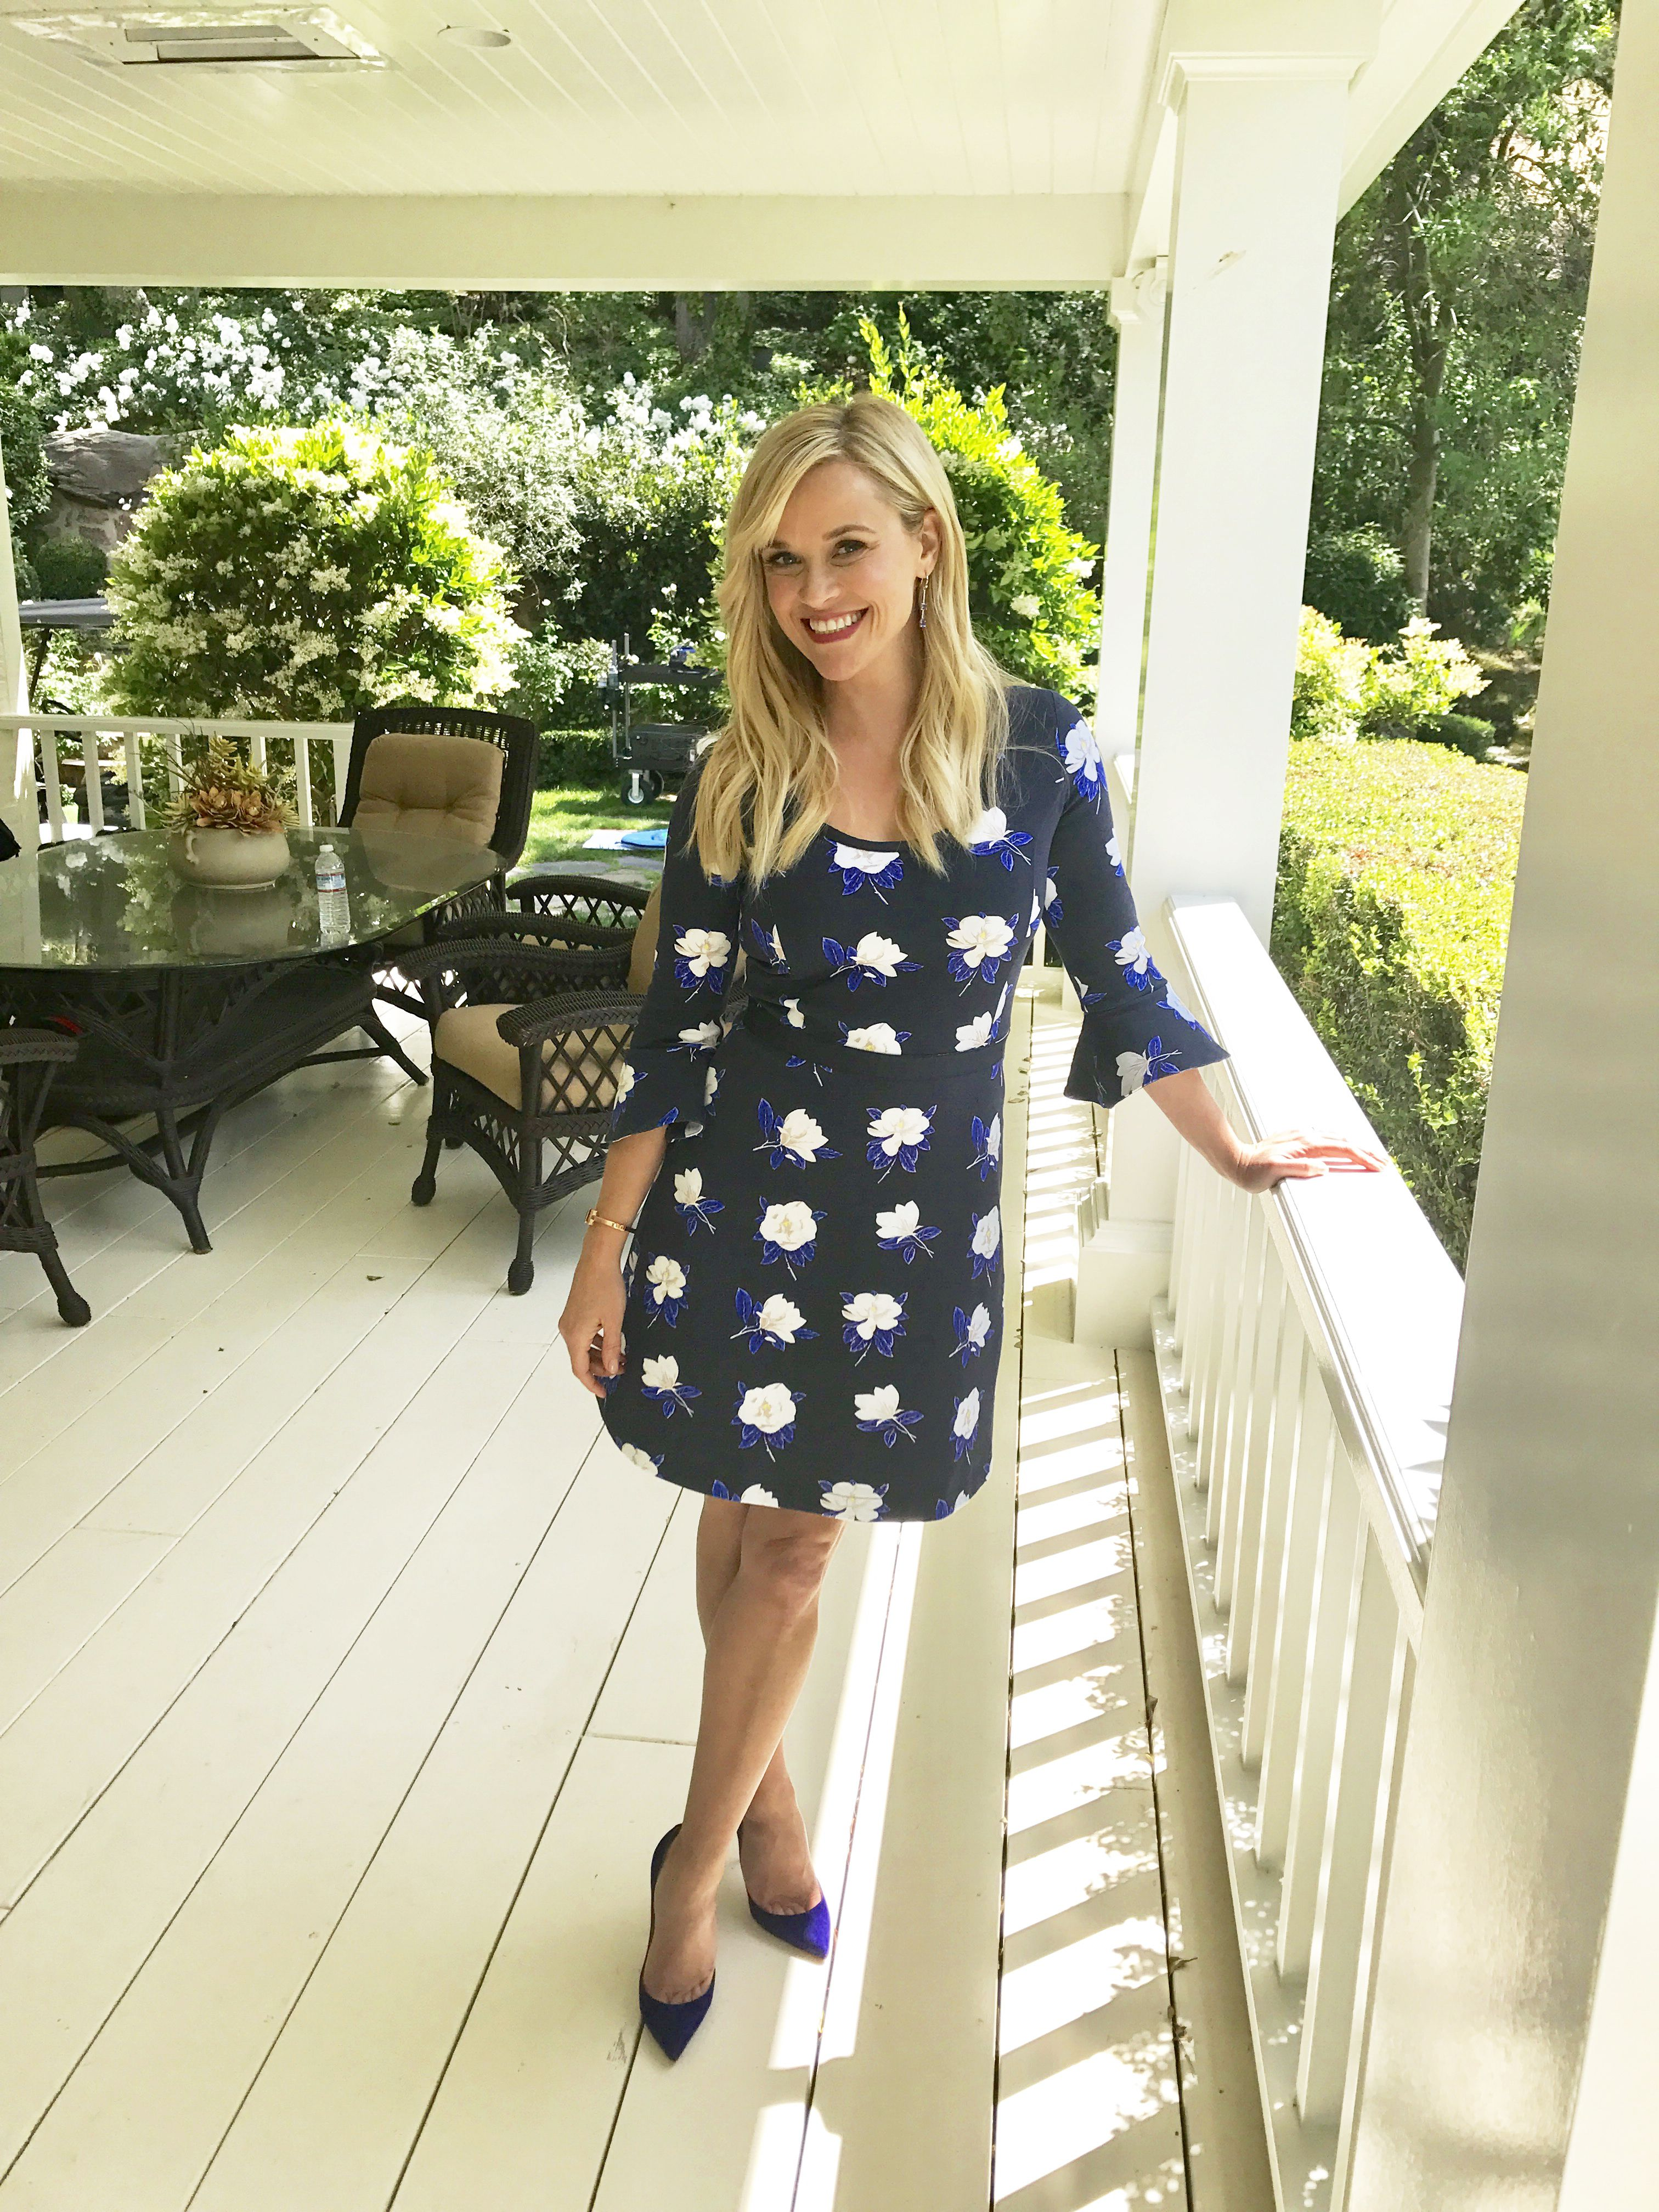 Reese In On The Cover Of Southern Living Wearing An